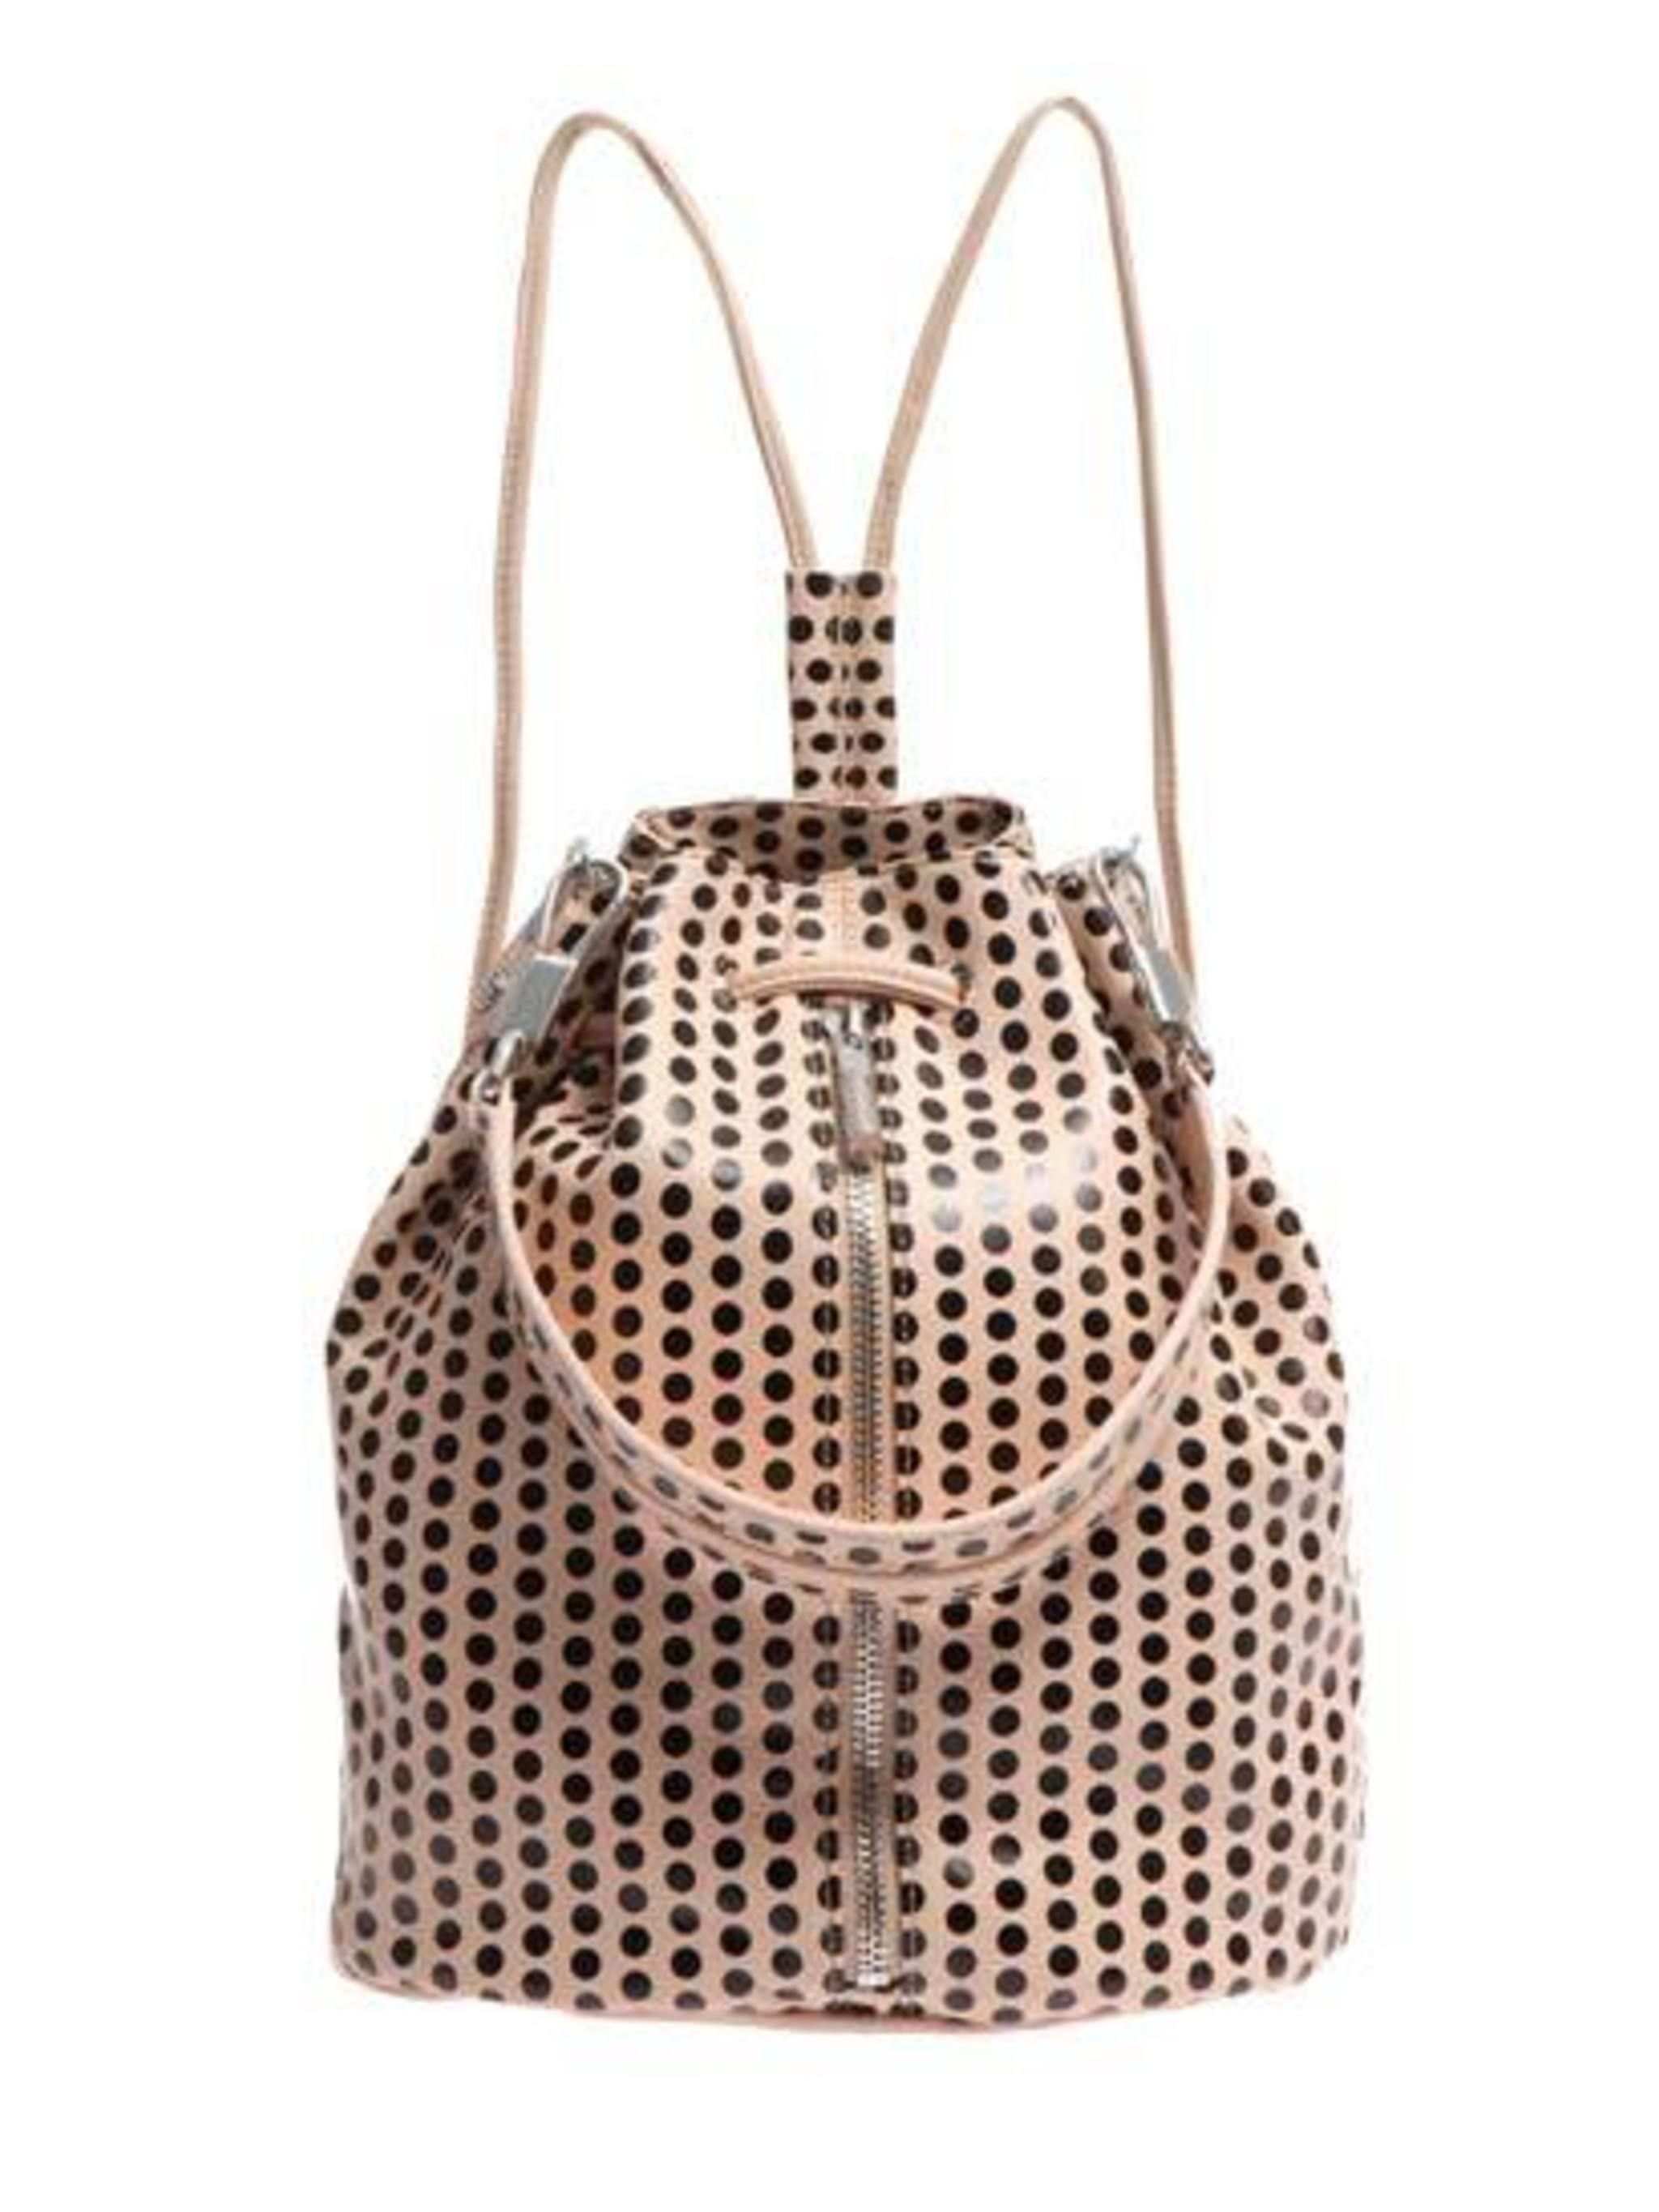 "<p>Get into the SS14 spots trend early. </p><p>Leather Polka Spot Backpack £518 by Elizabeth and James at <a href=""http://www.matchesfashion.com/product/177254"">Matches.com</a></p>"